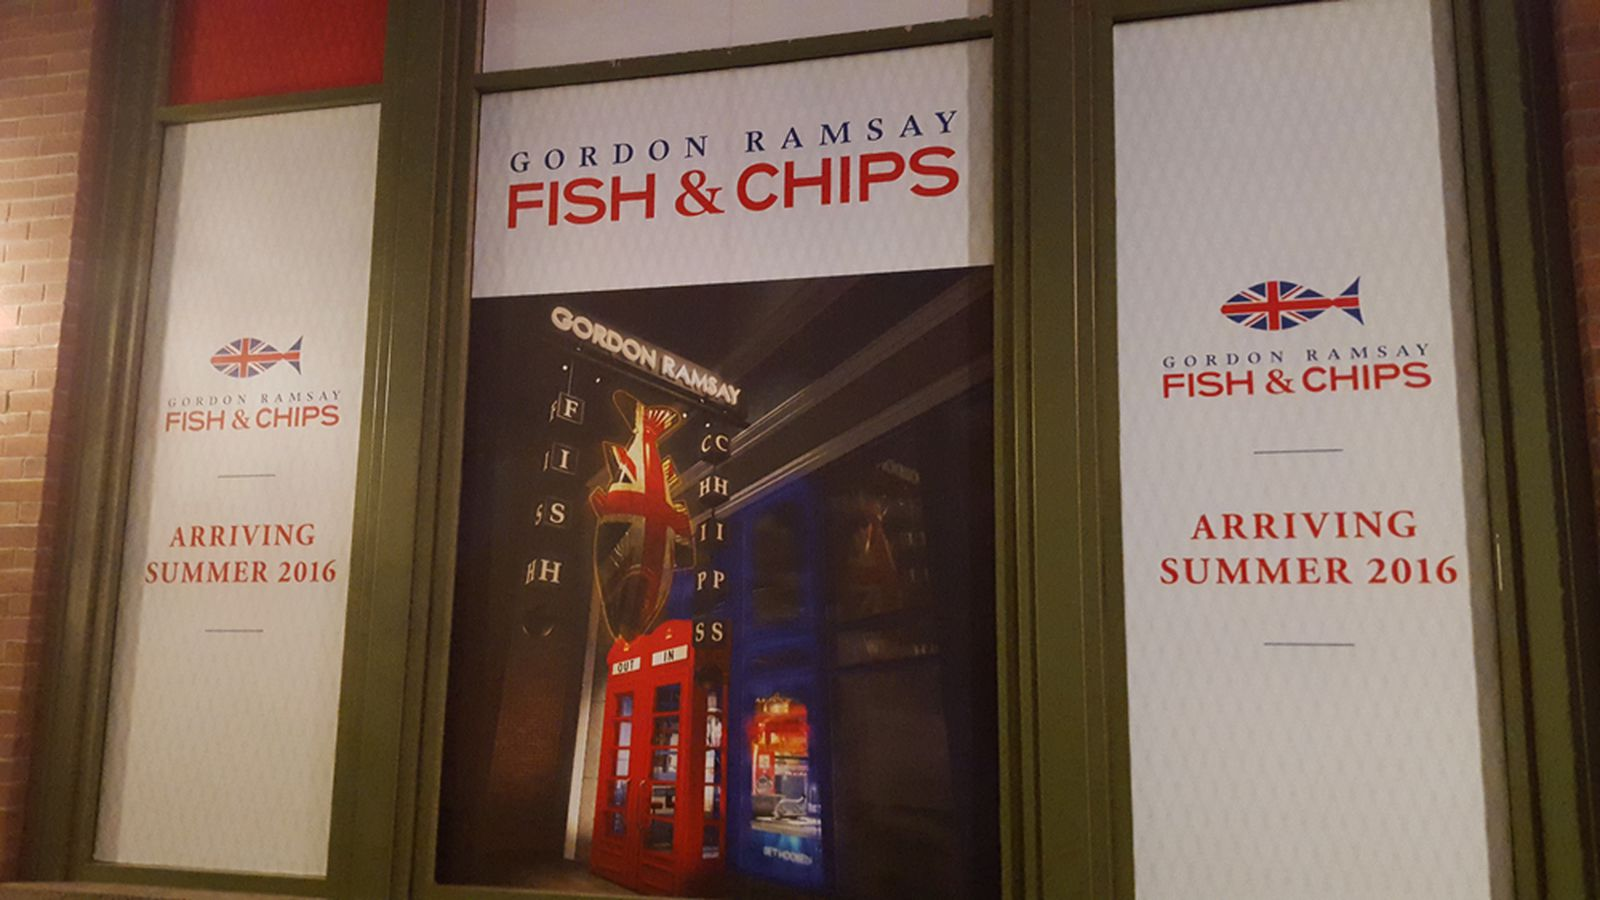 Updates on Dining at the Linq and Gordon Ramsay Fish & Chips - Eater Vegas